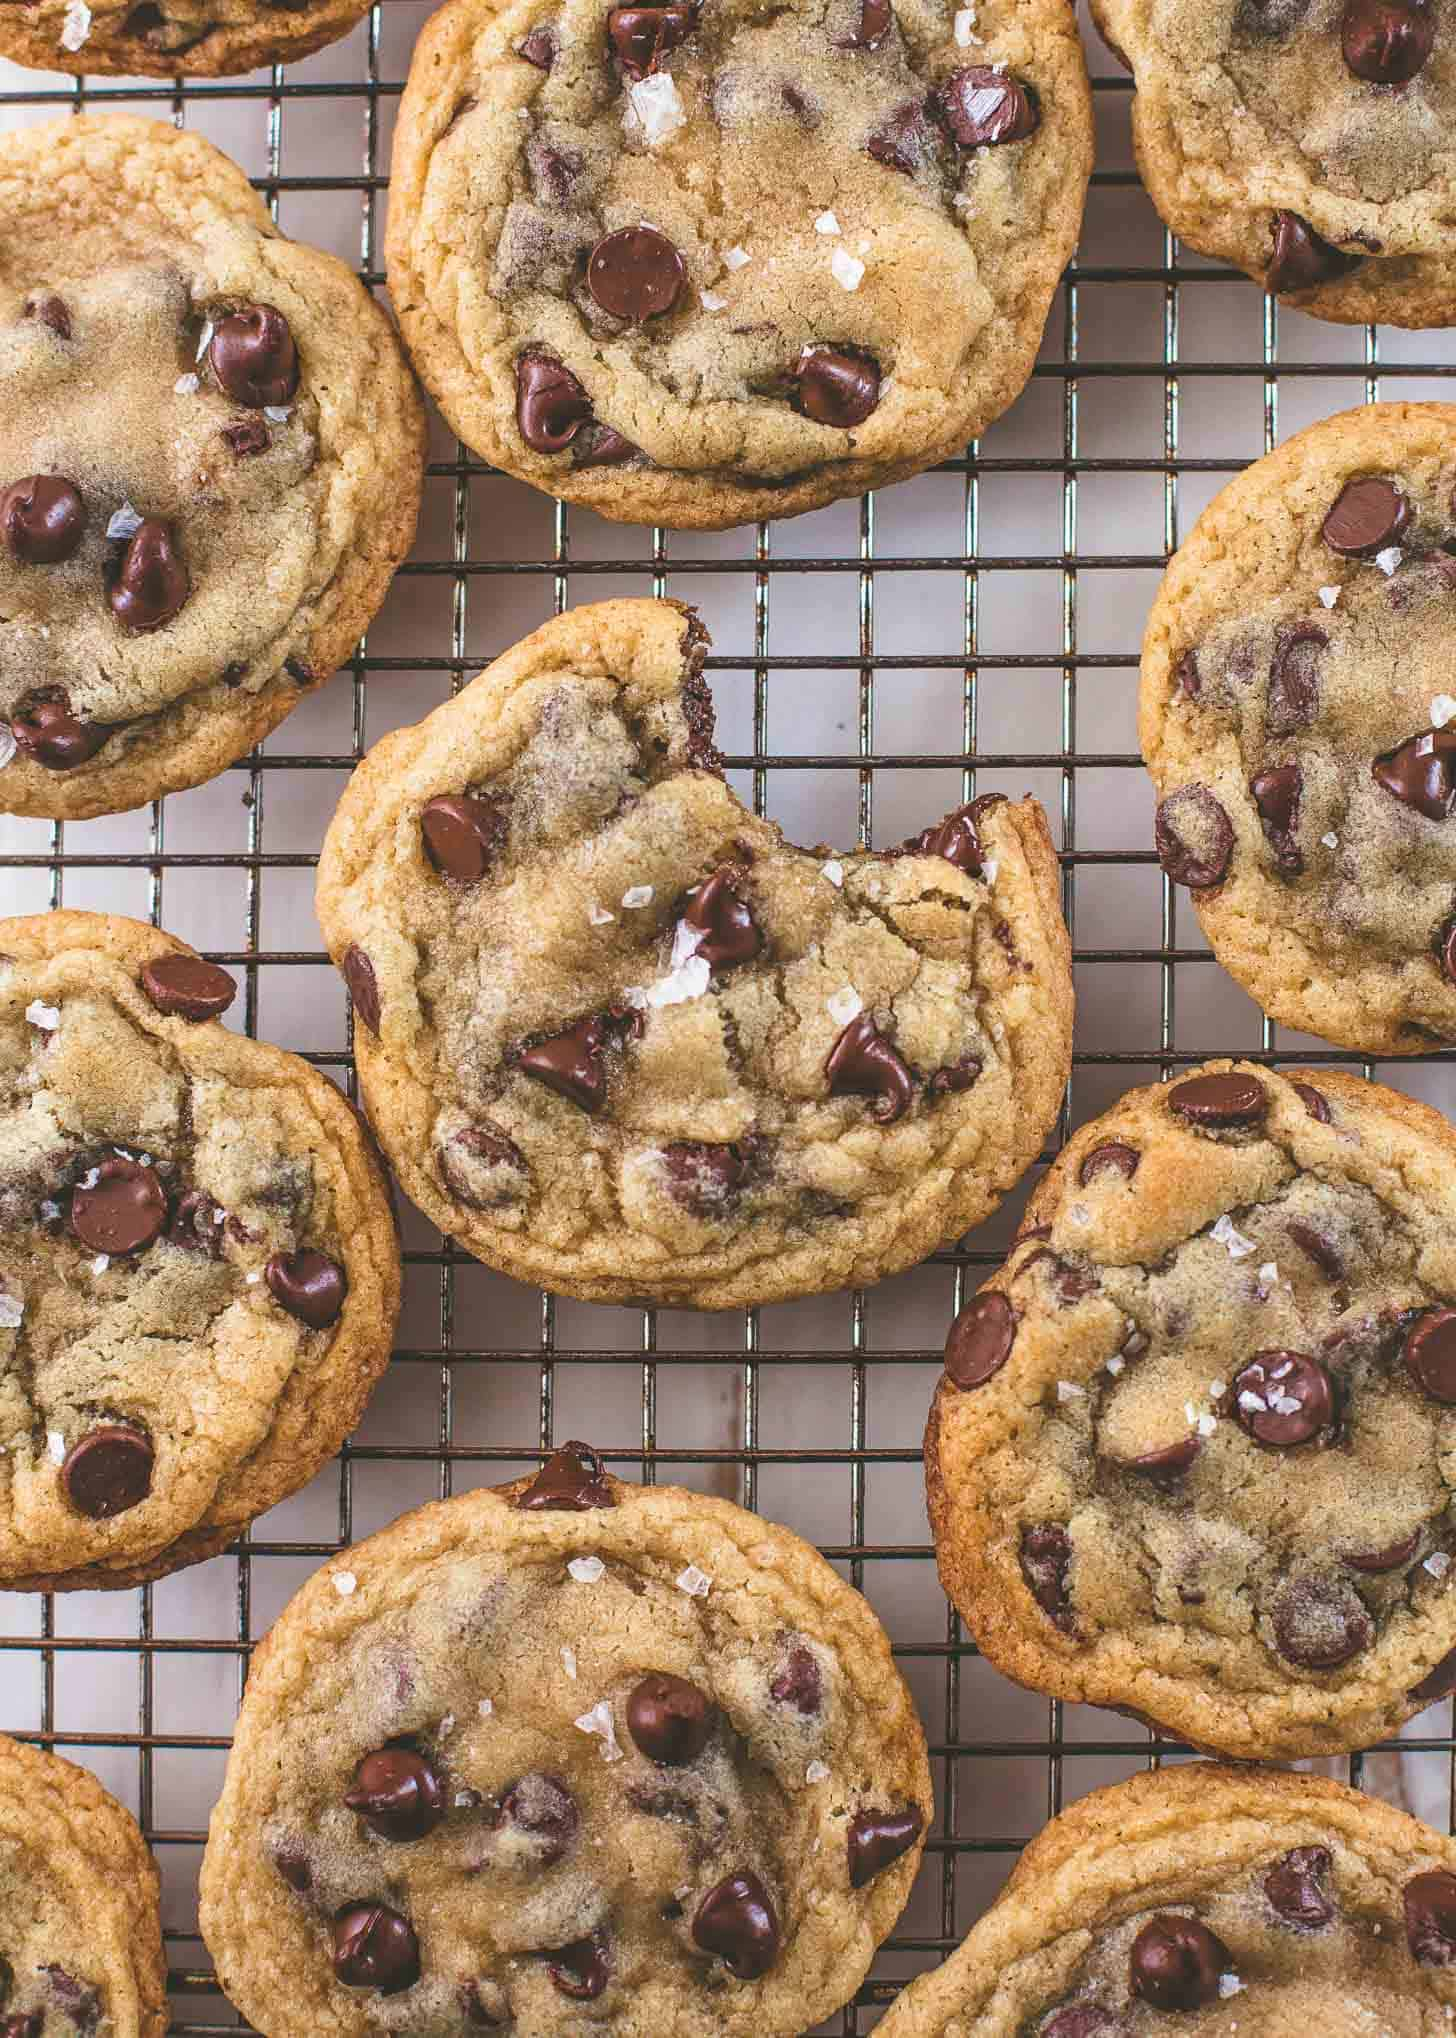 chocolate chip cookies on a cooling rack, one with a bite taken out of it